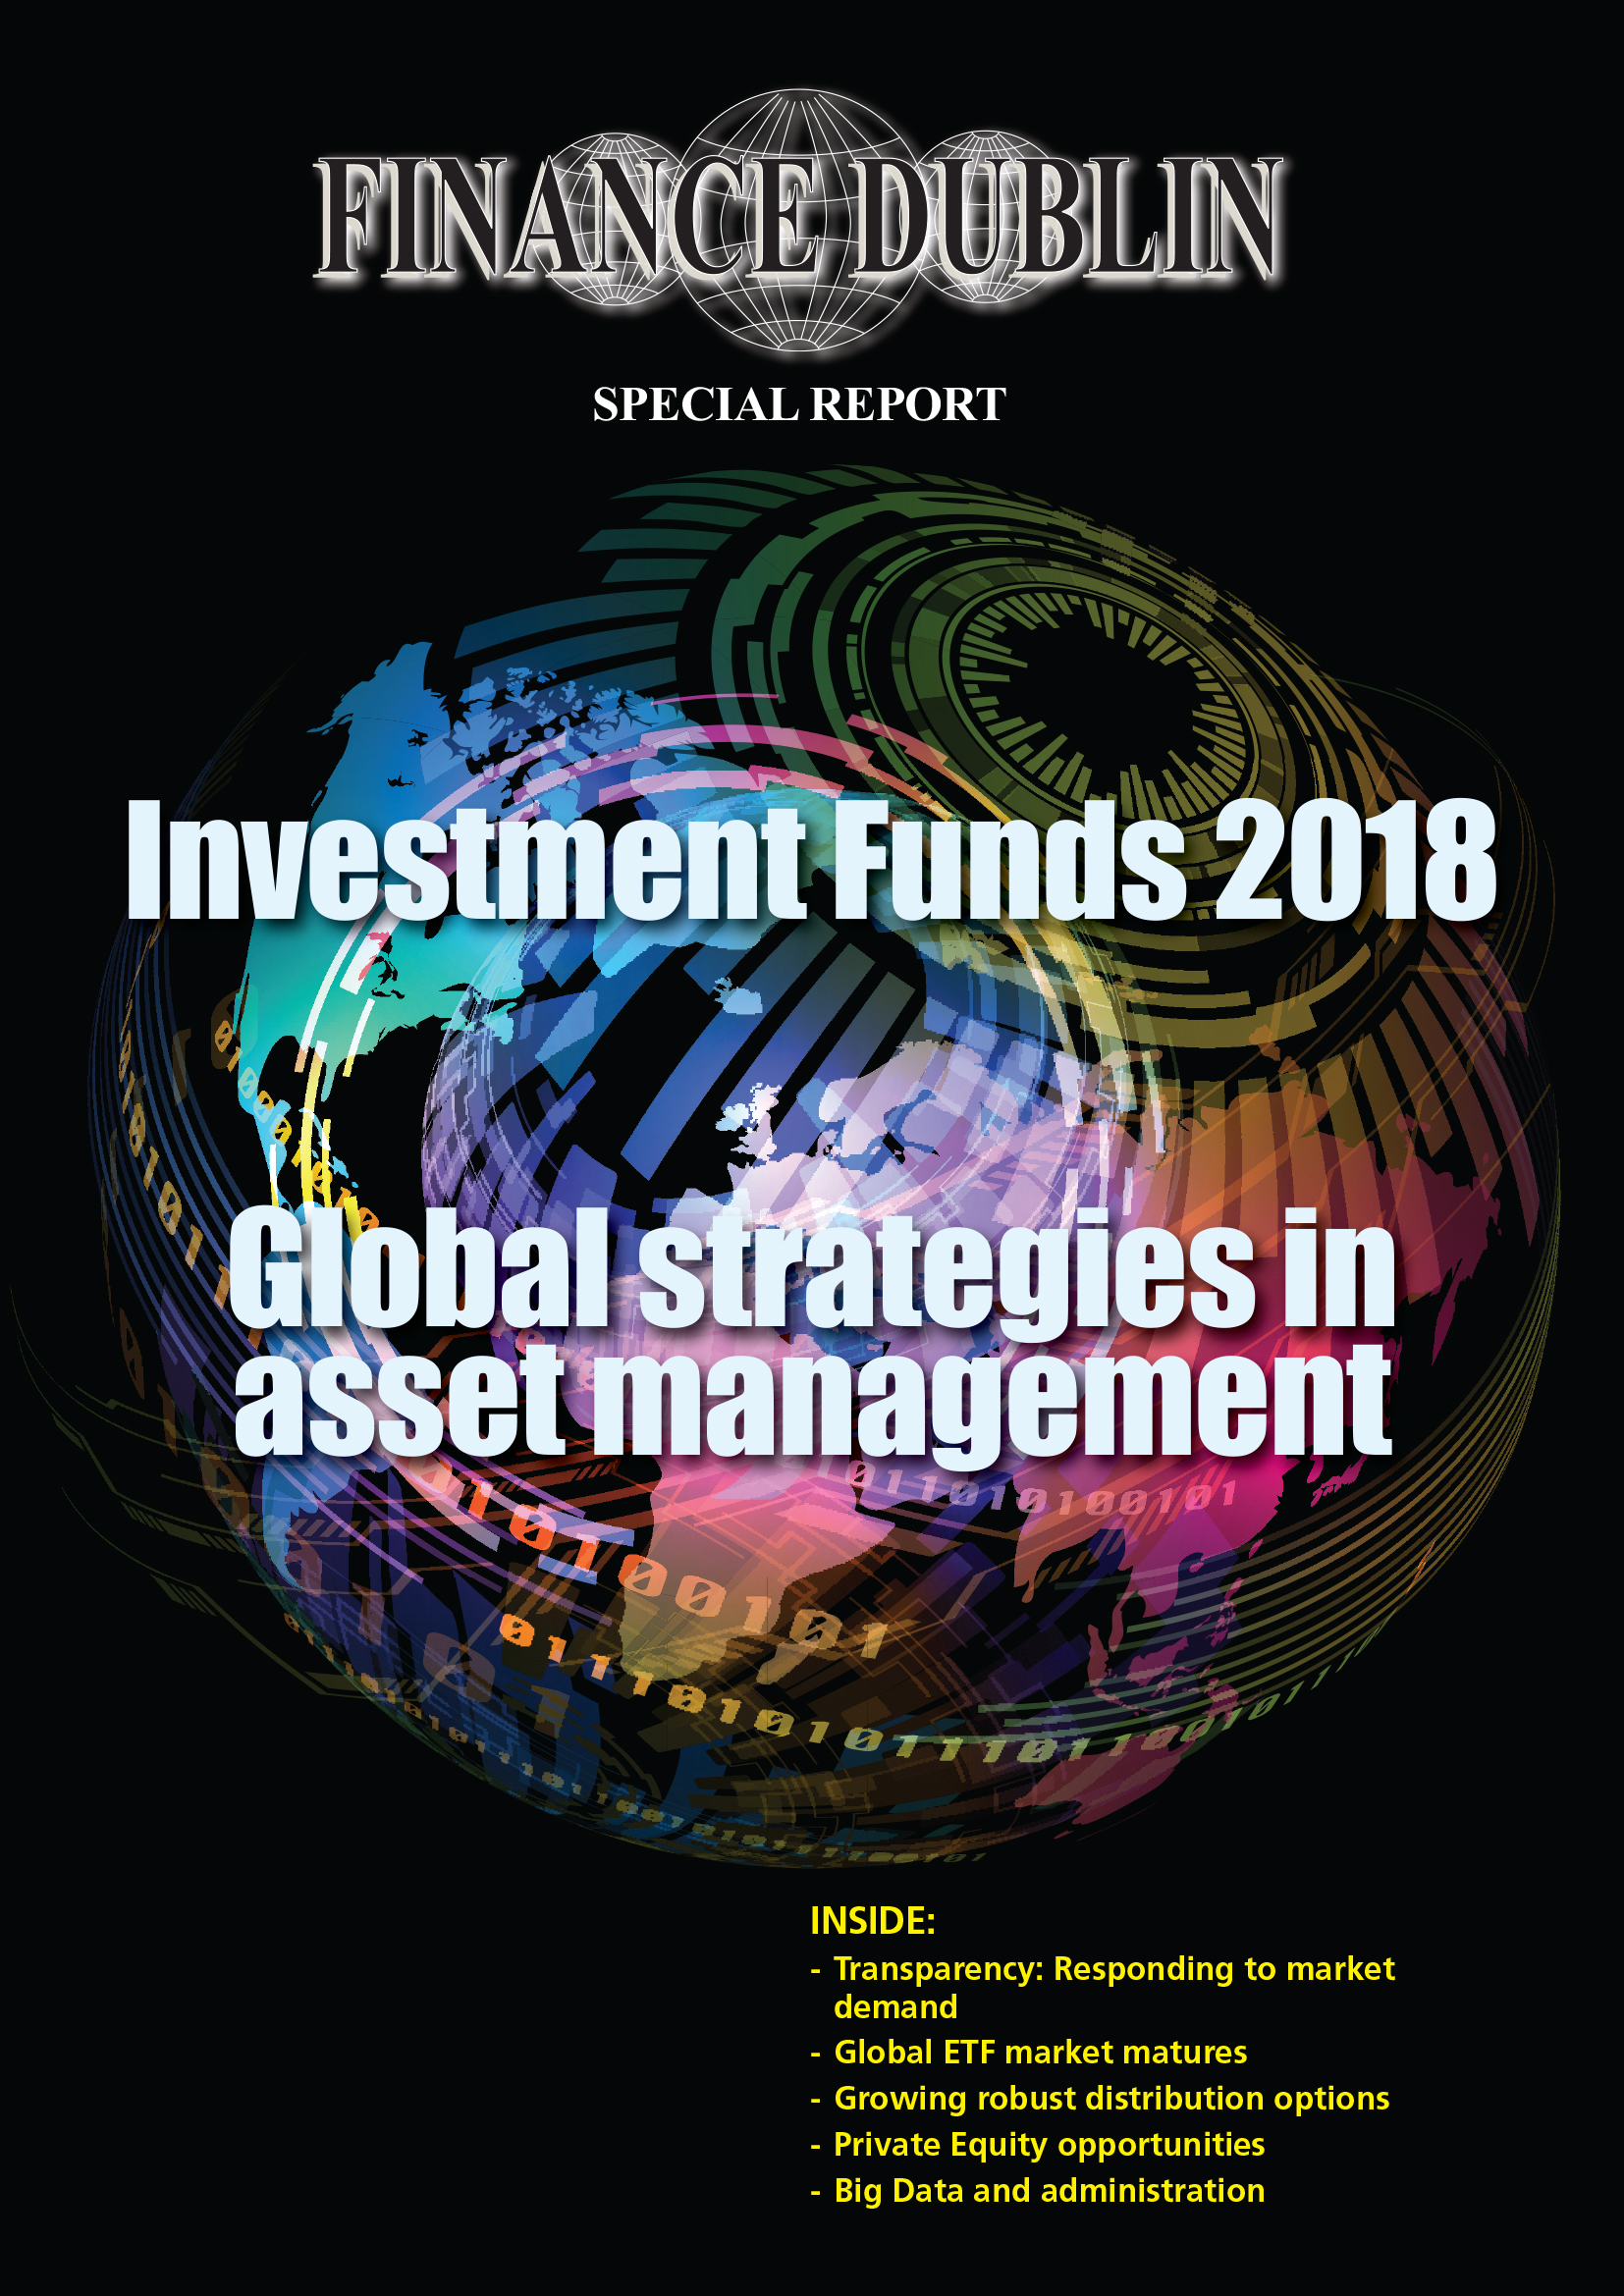 Global trading strategies investment management